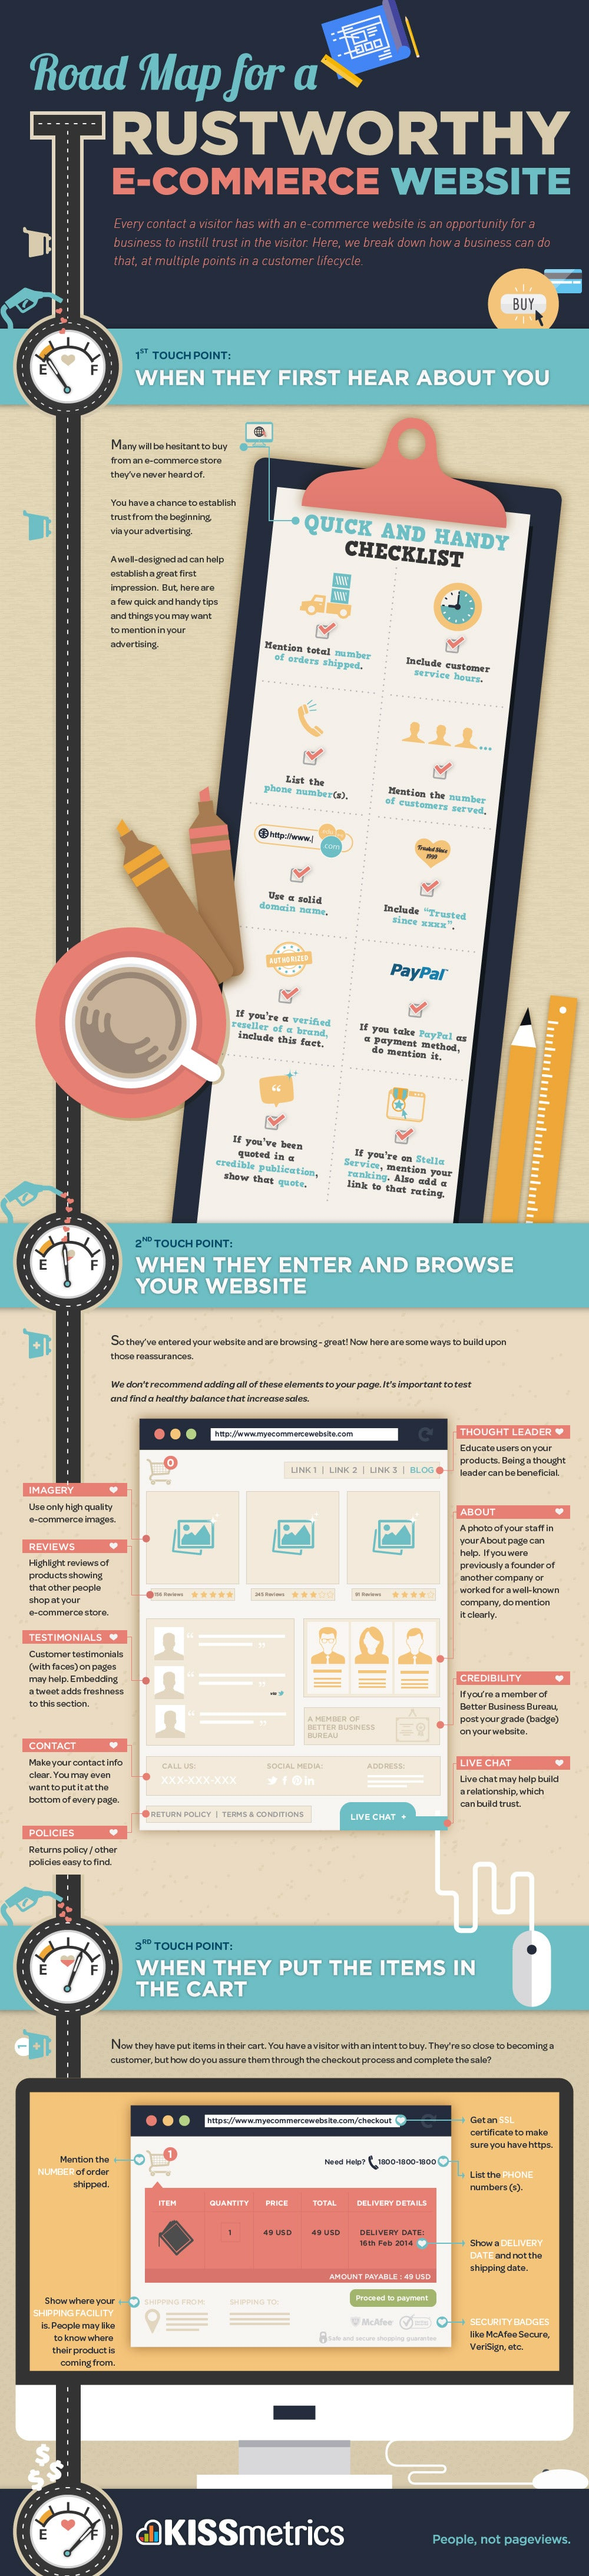 How to Get Customers to Trust Your Ecommerce Business (Infographic)